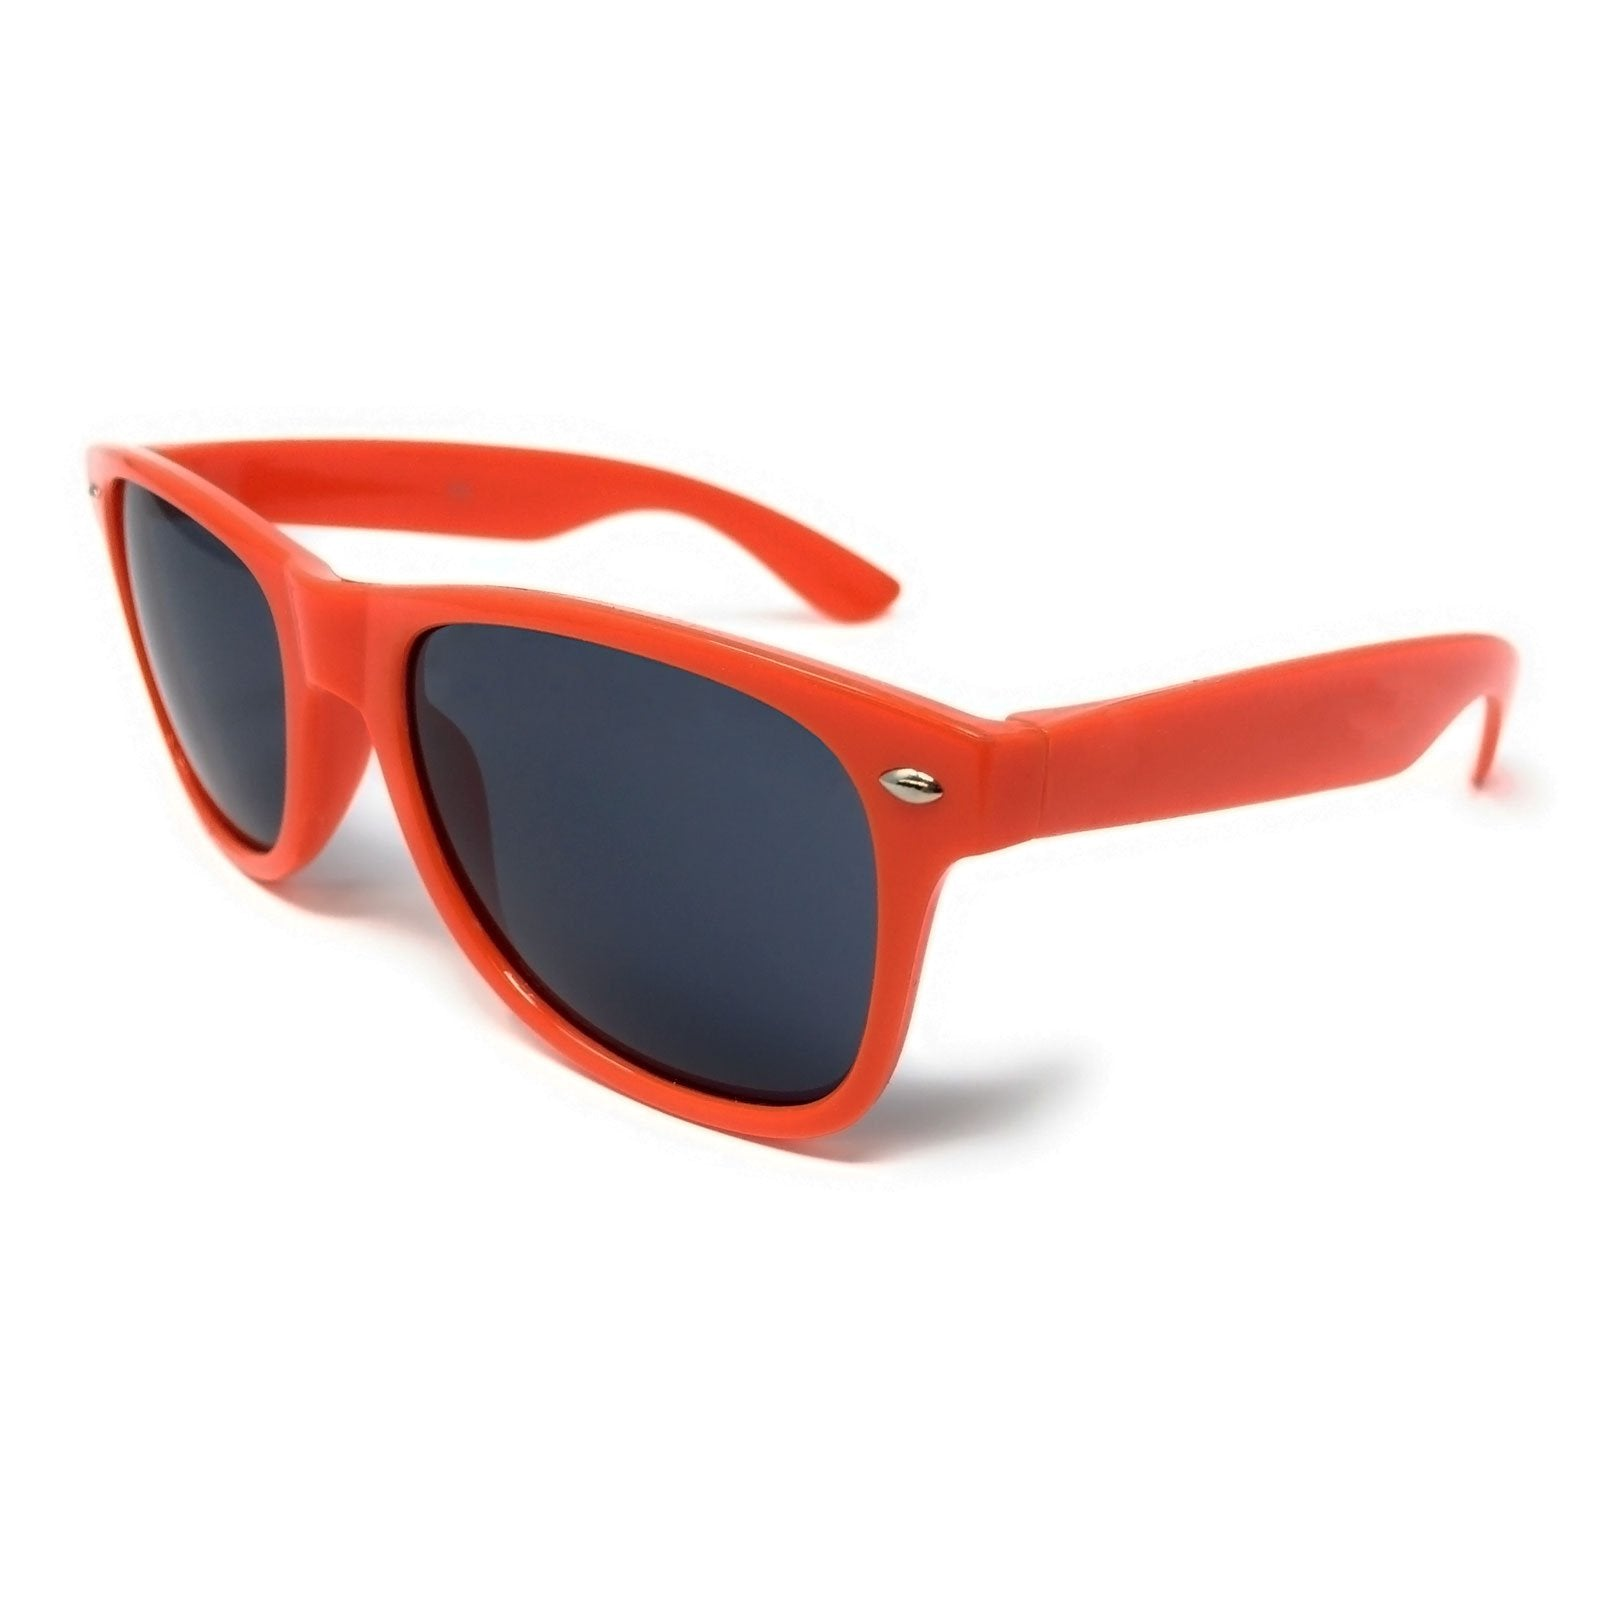 Wholesale Classic Sunglasses - Orange Frame, Black Lens